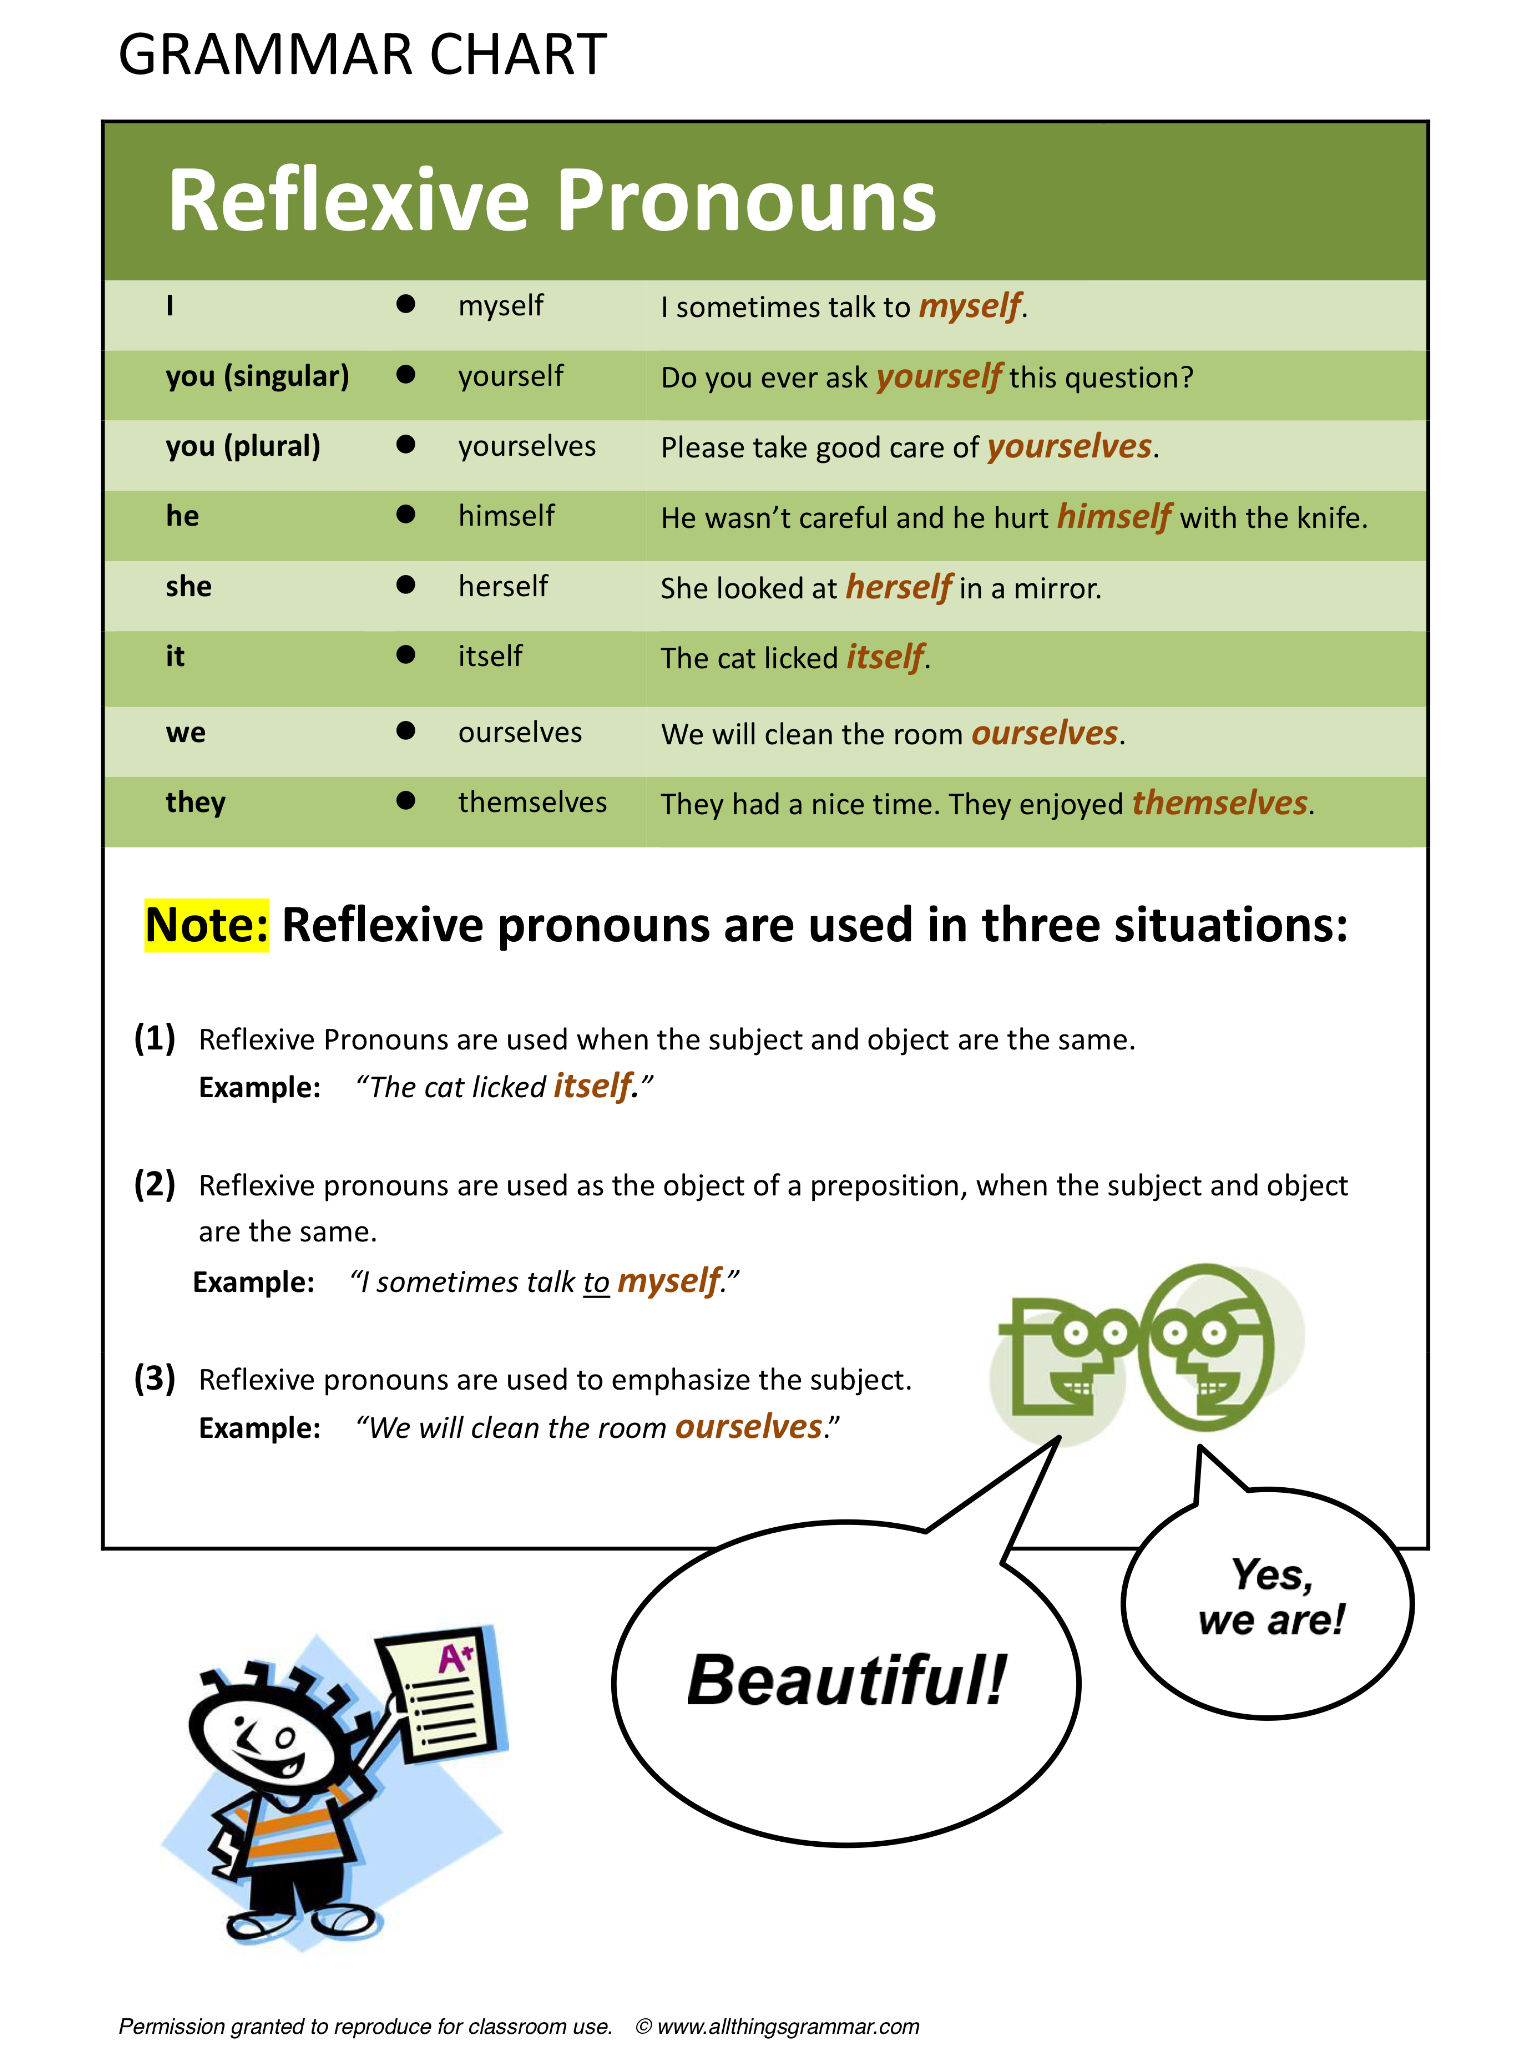 English Grammar Reflexive Pronouns Lthingsgrammar Reflexive Pronouns